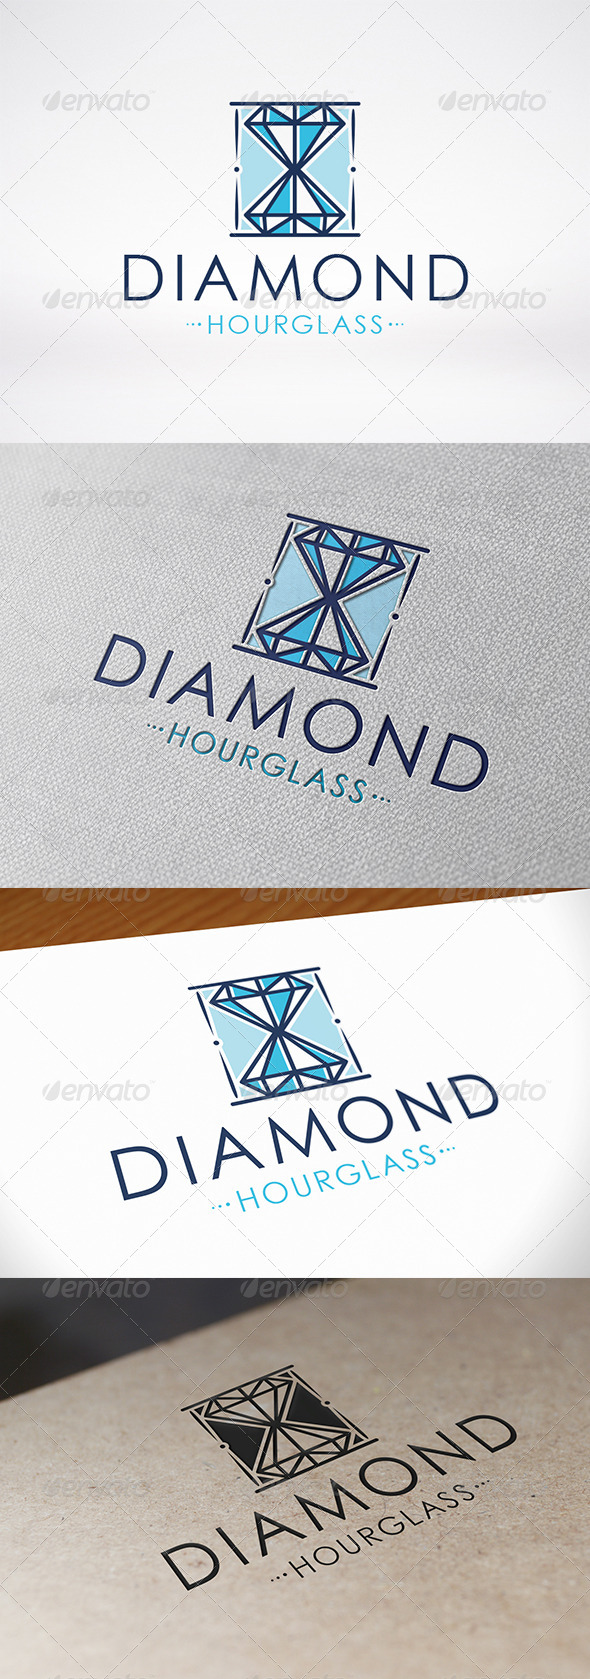 GraphicRiver Diamond Hourglass Logo 7141565